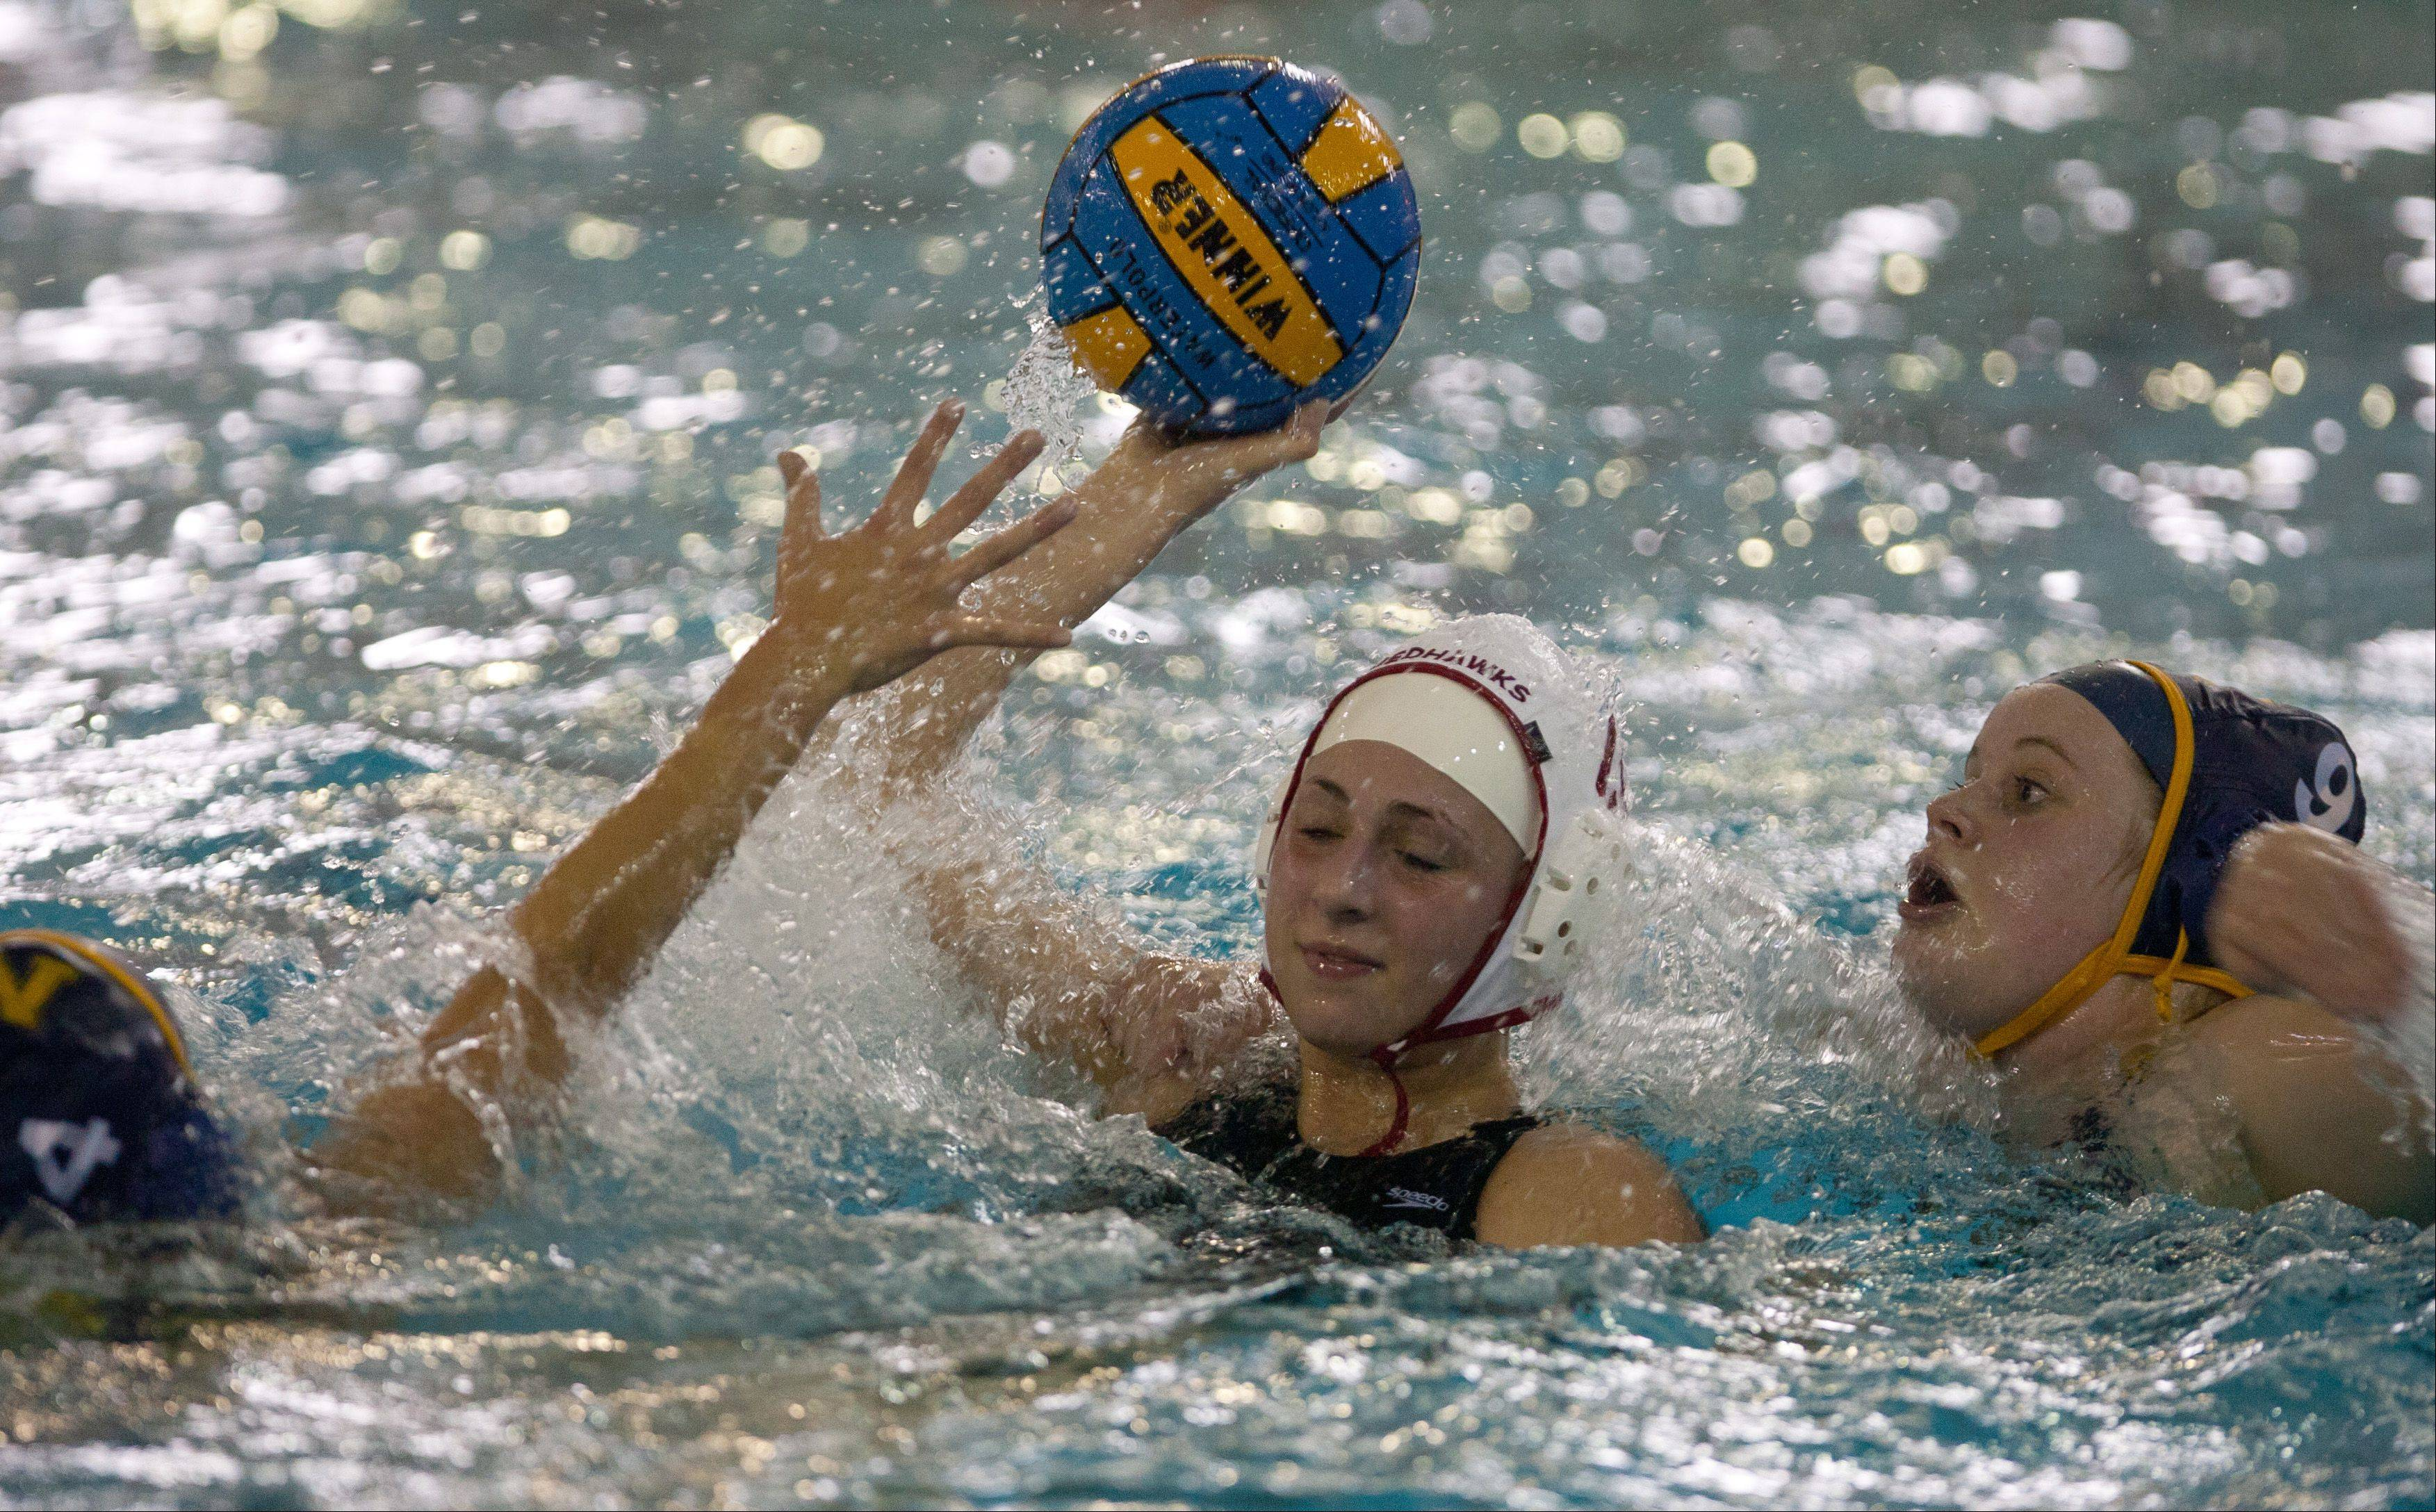 Naperville Central's Leslie Calabrese looks to pass while Neuqua Valley's Deanna Hoff defends, during the Naperville Quint girls varsity water polo tournament.